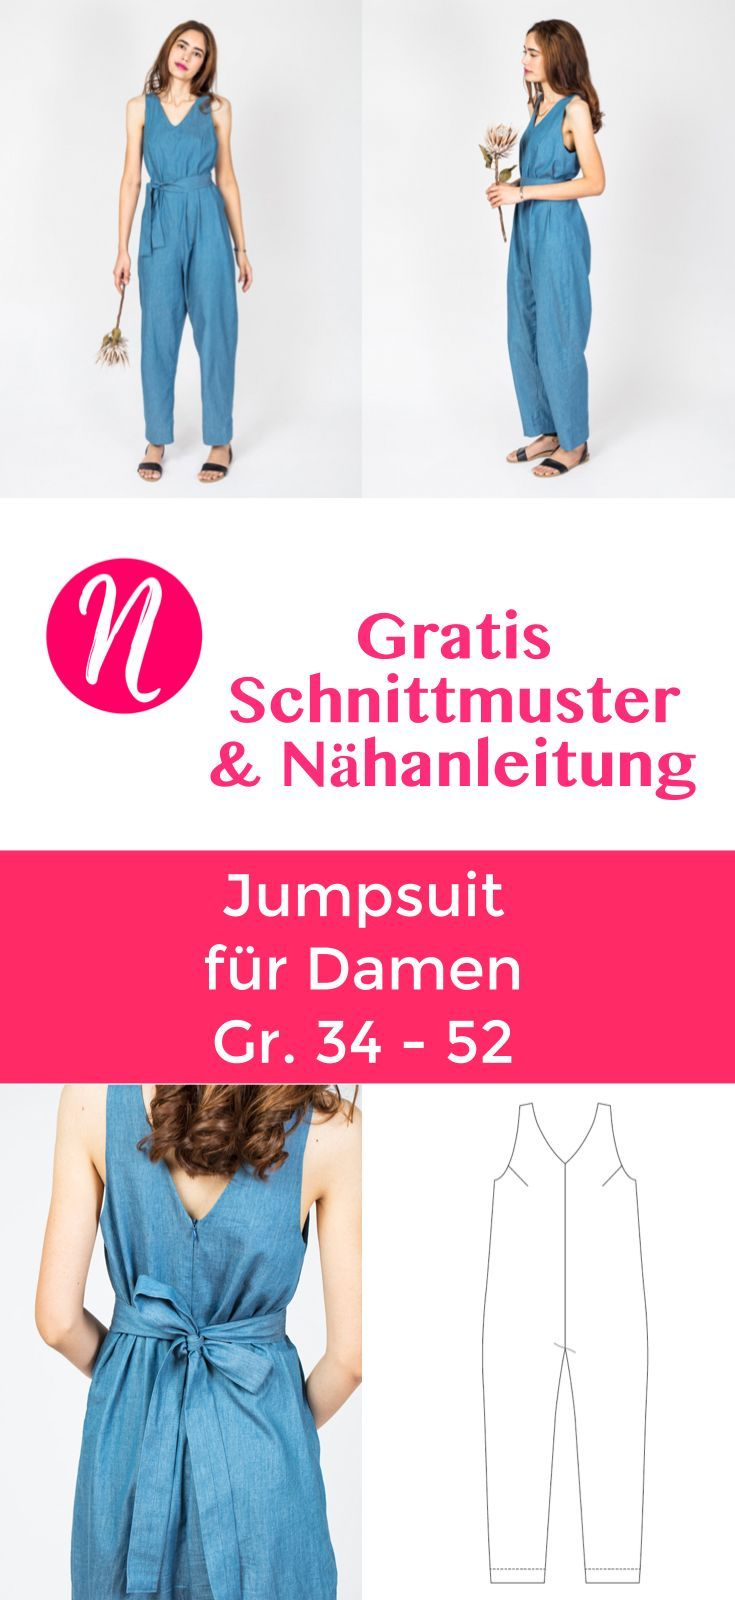 Jumpsuit für Damen – free of charge Schnittmuster